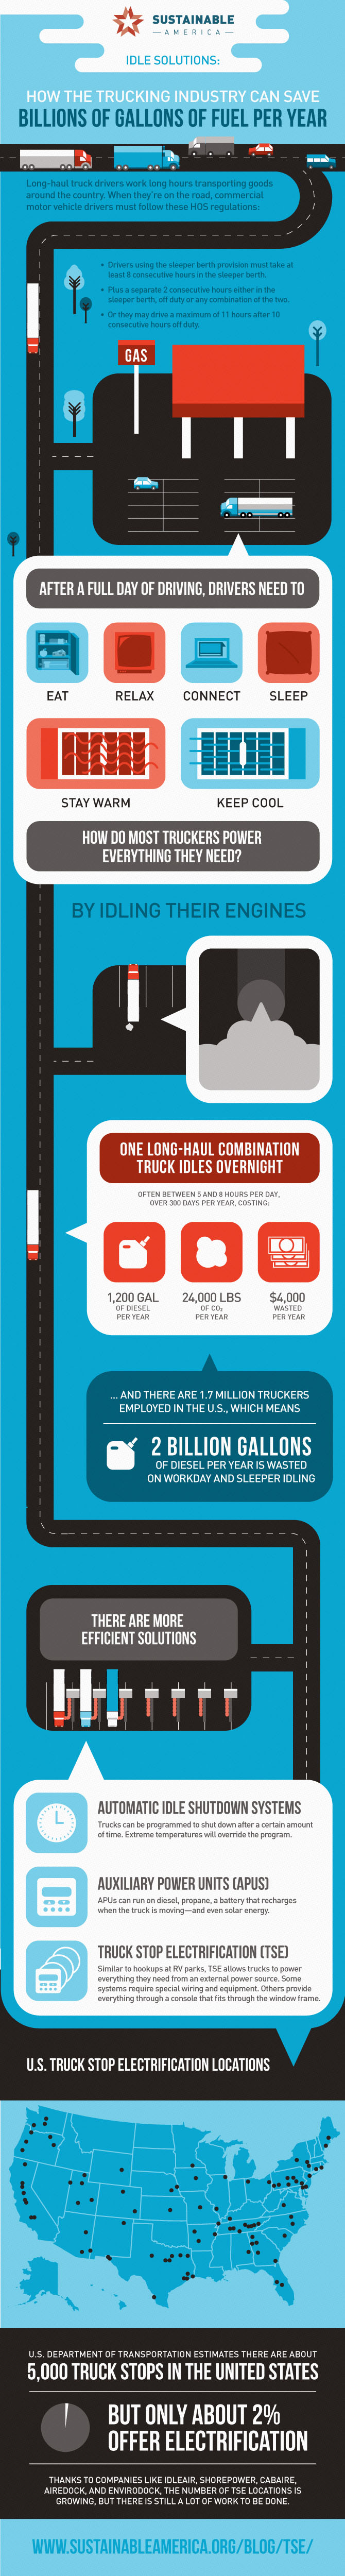 How the Trucking Industry Can Save Billions of Gallons of Fuel Per Year through Idle Reduction Strategies